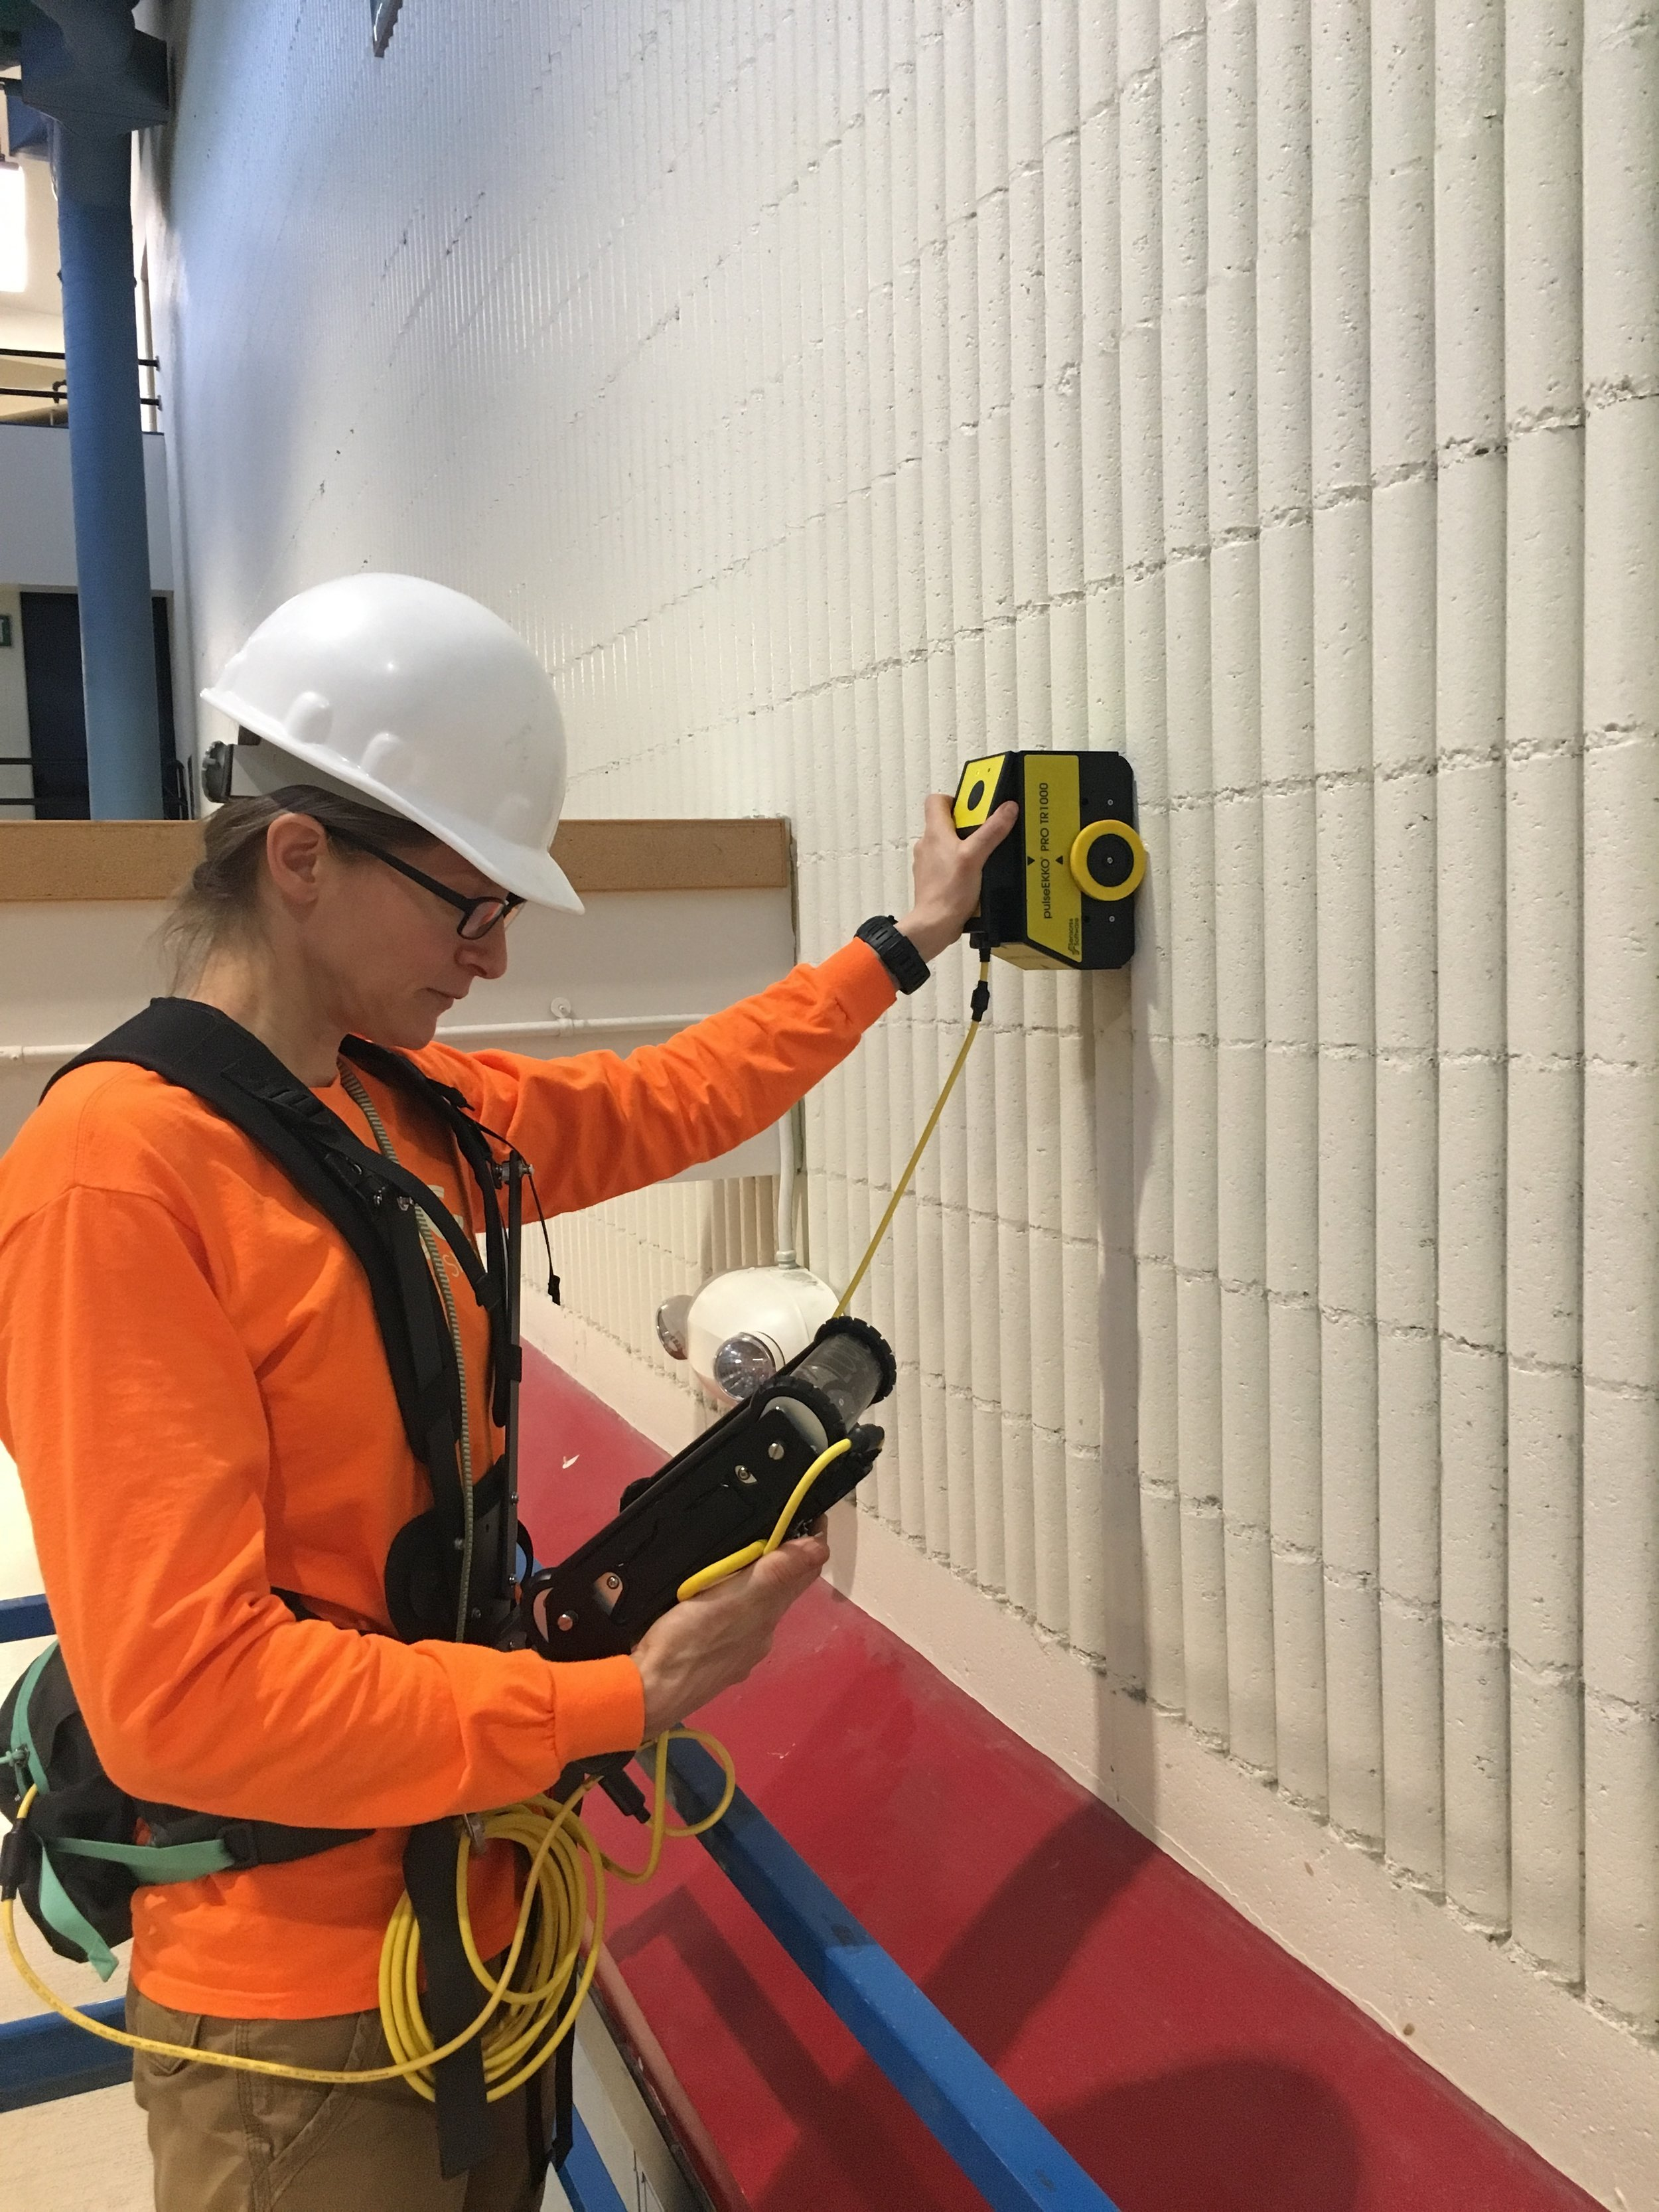 Using GPR on a wall to assess grouting conditions